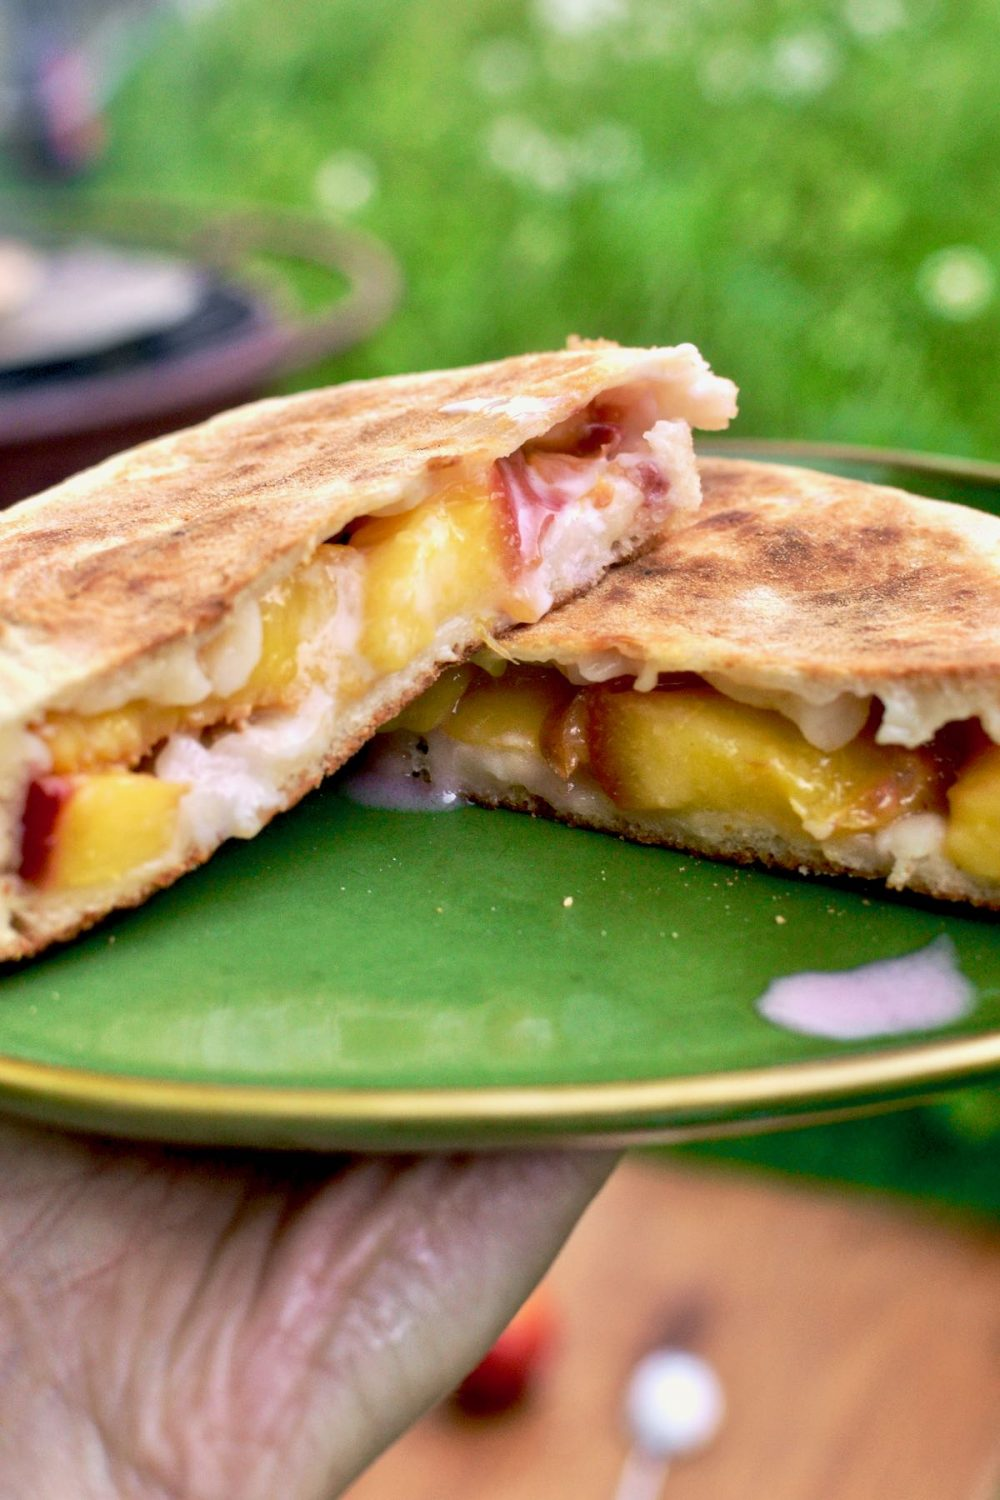 A calzone is cut in half, revealing the filling of fresh peach slices and coconut cream.